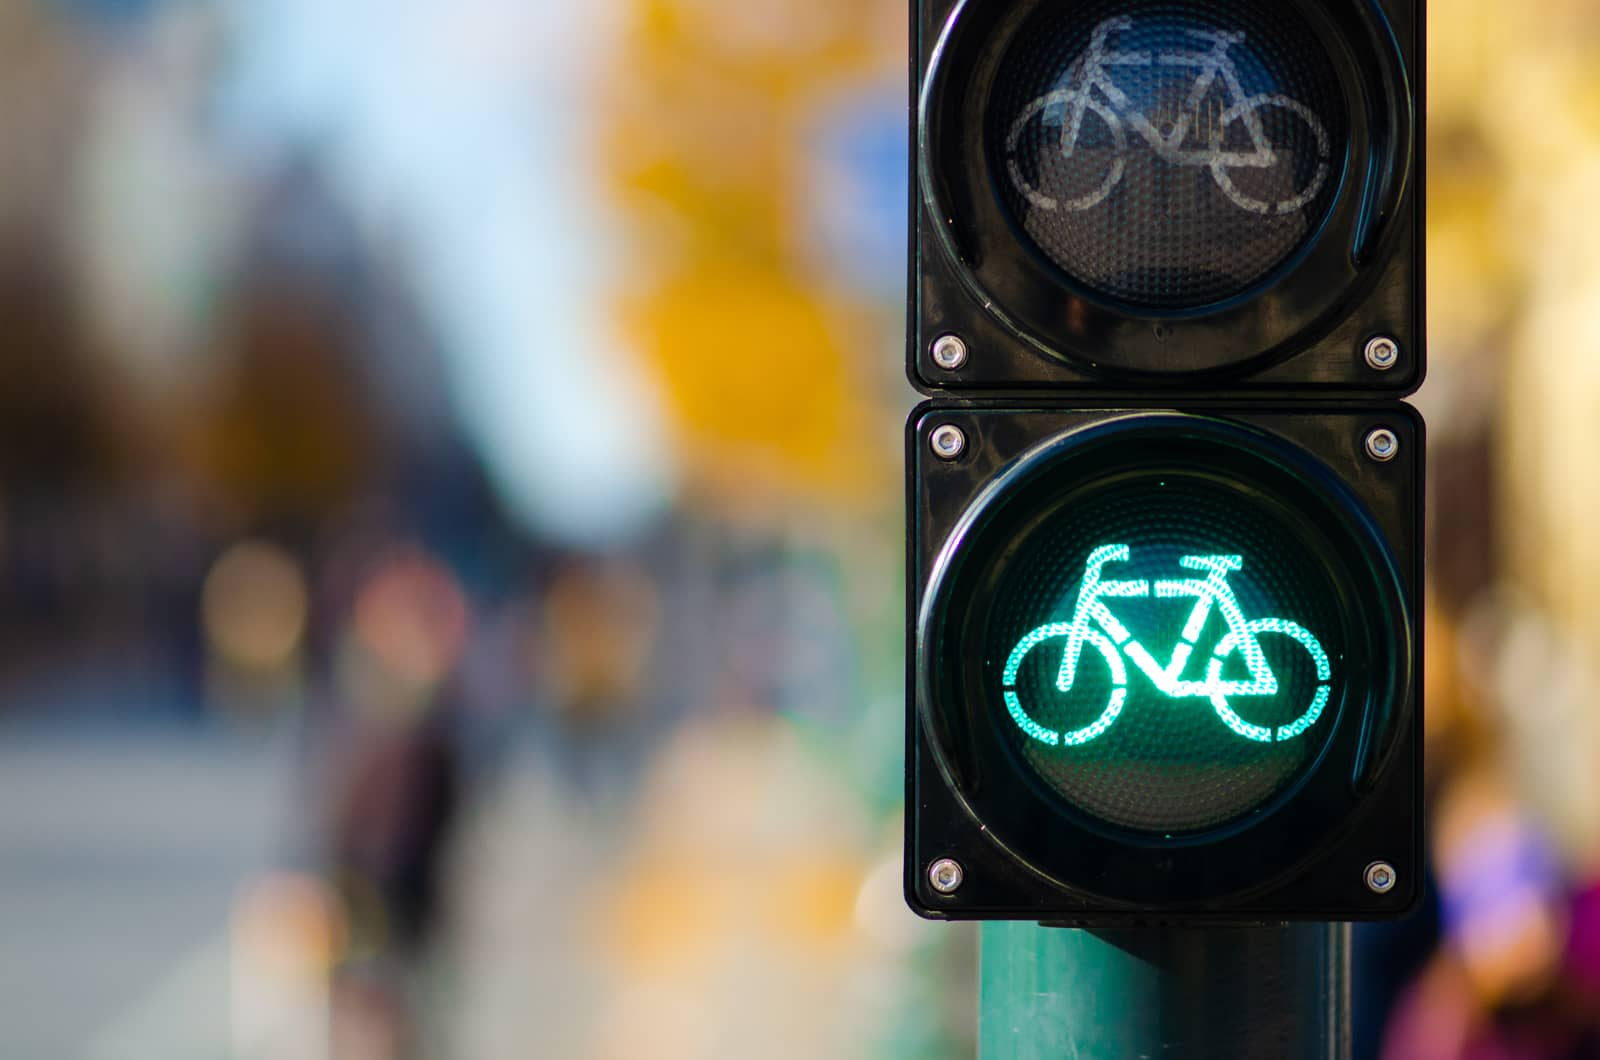 Do You Need a License for an Electric Bike?